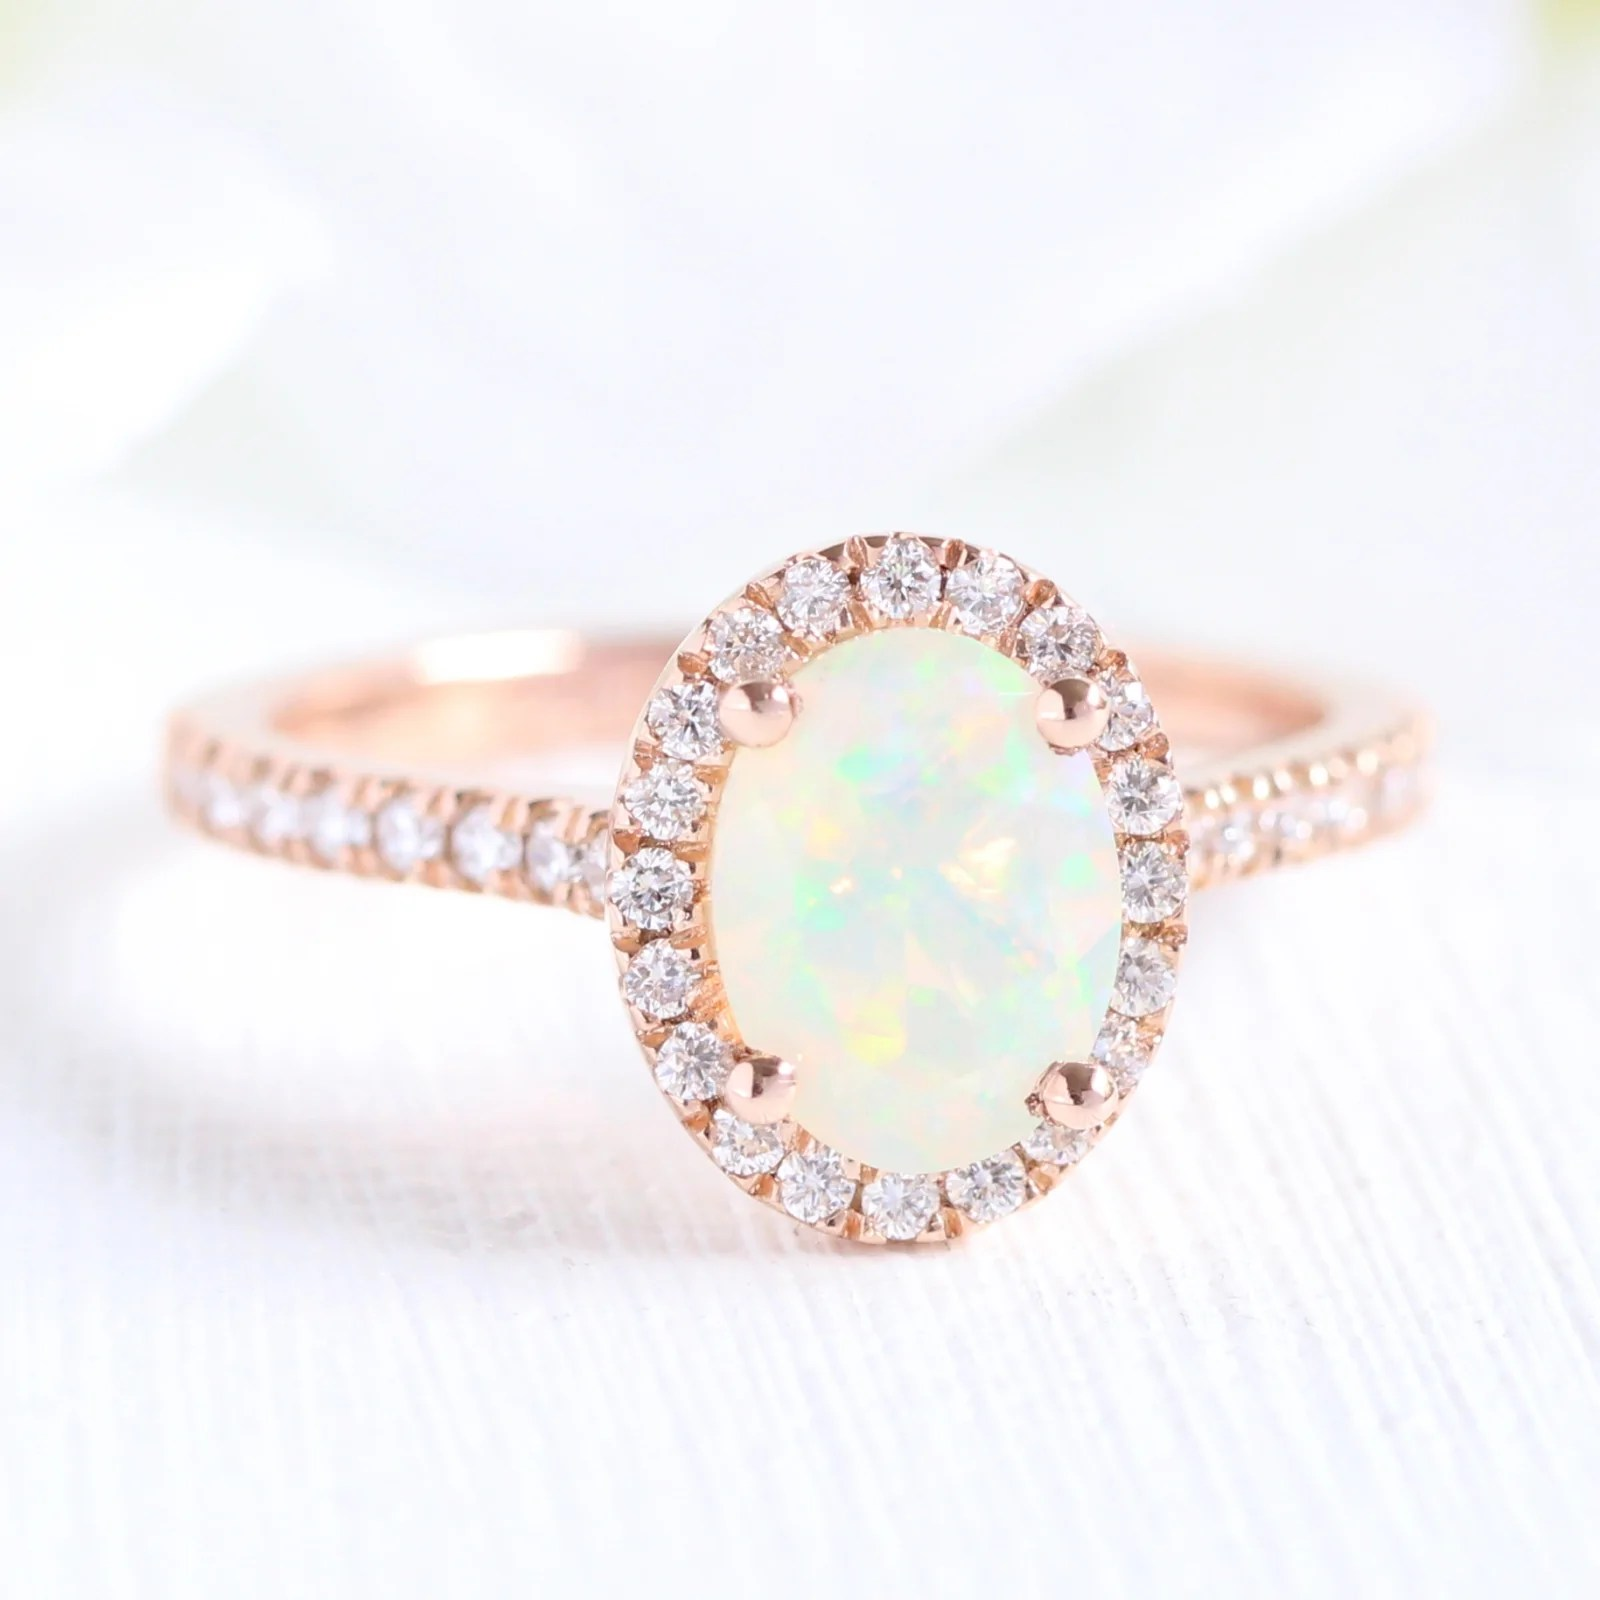 Luna Halo Ring In Pave Band W Oval Cut Opal And Diamond La More Design